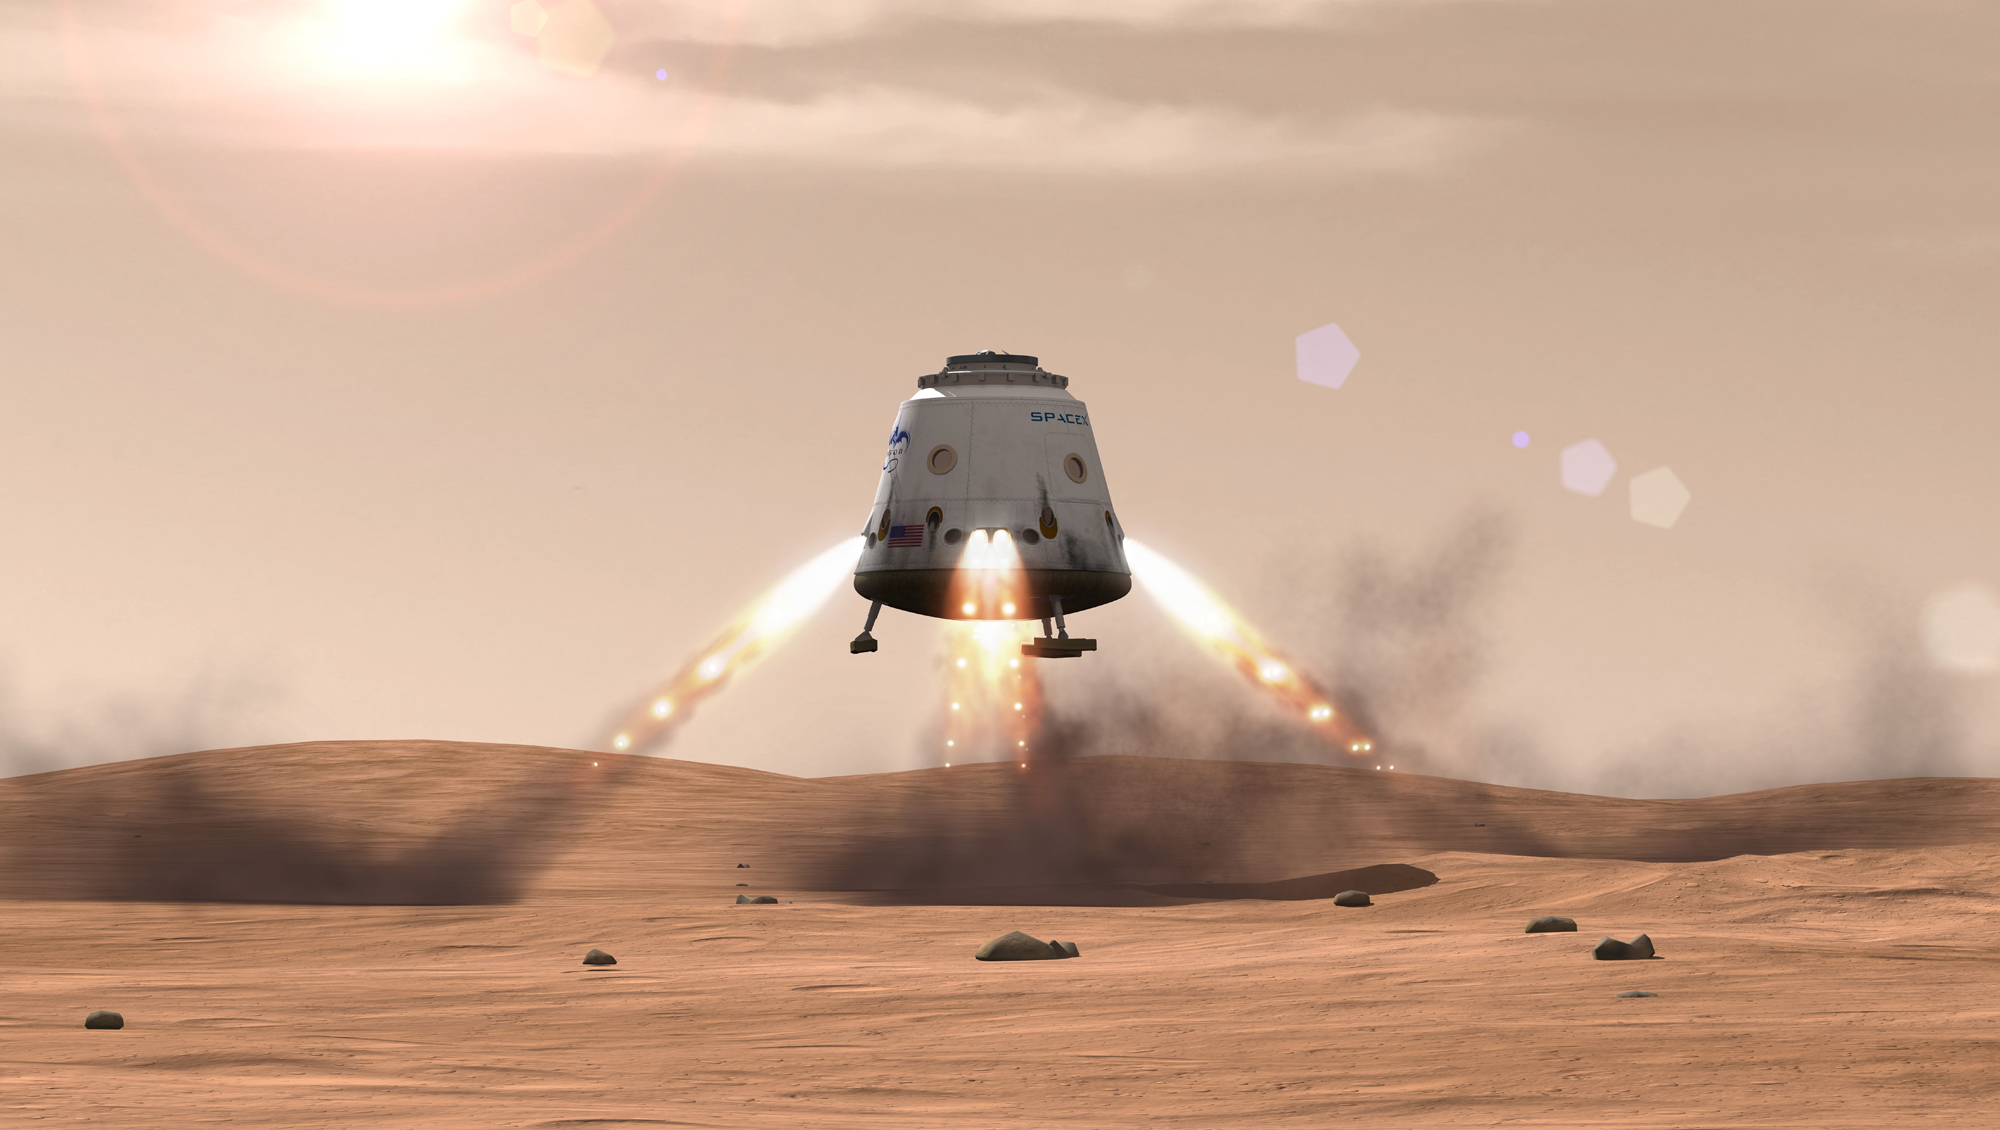 Elon Musk's SpaceX Gets $1 Billion from Google and Fidelity